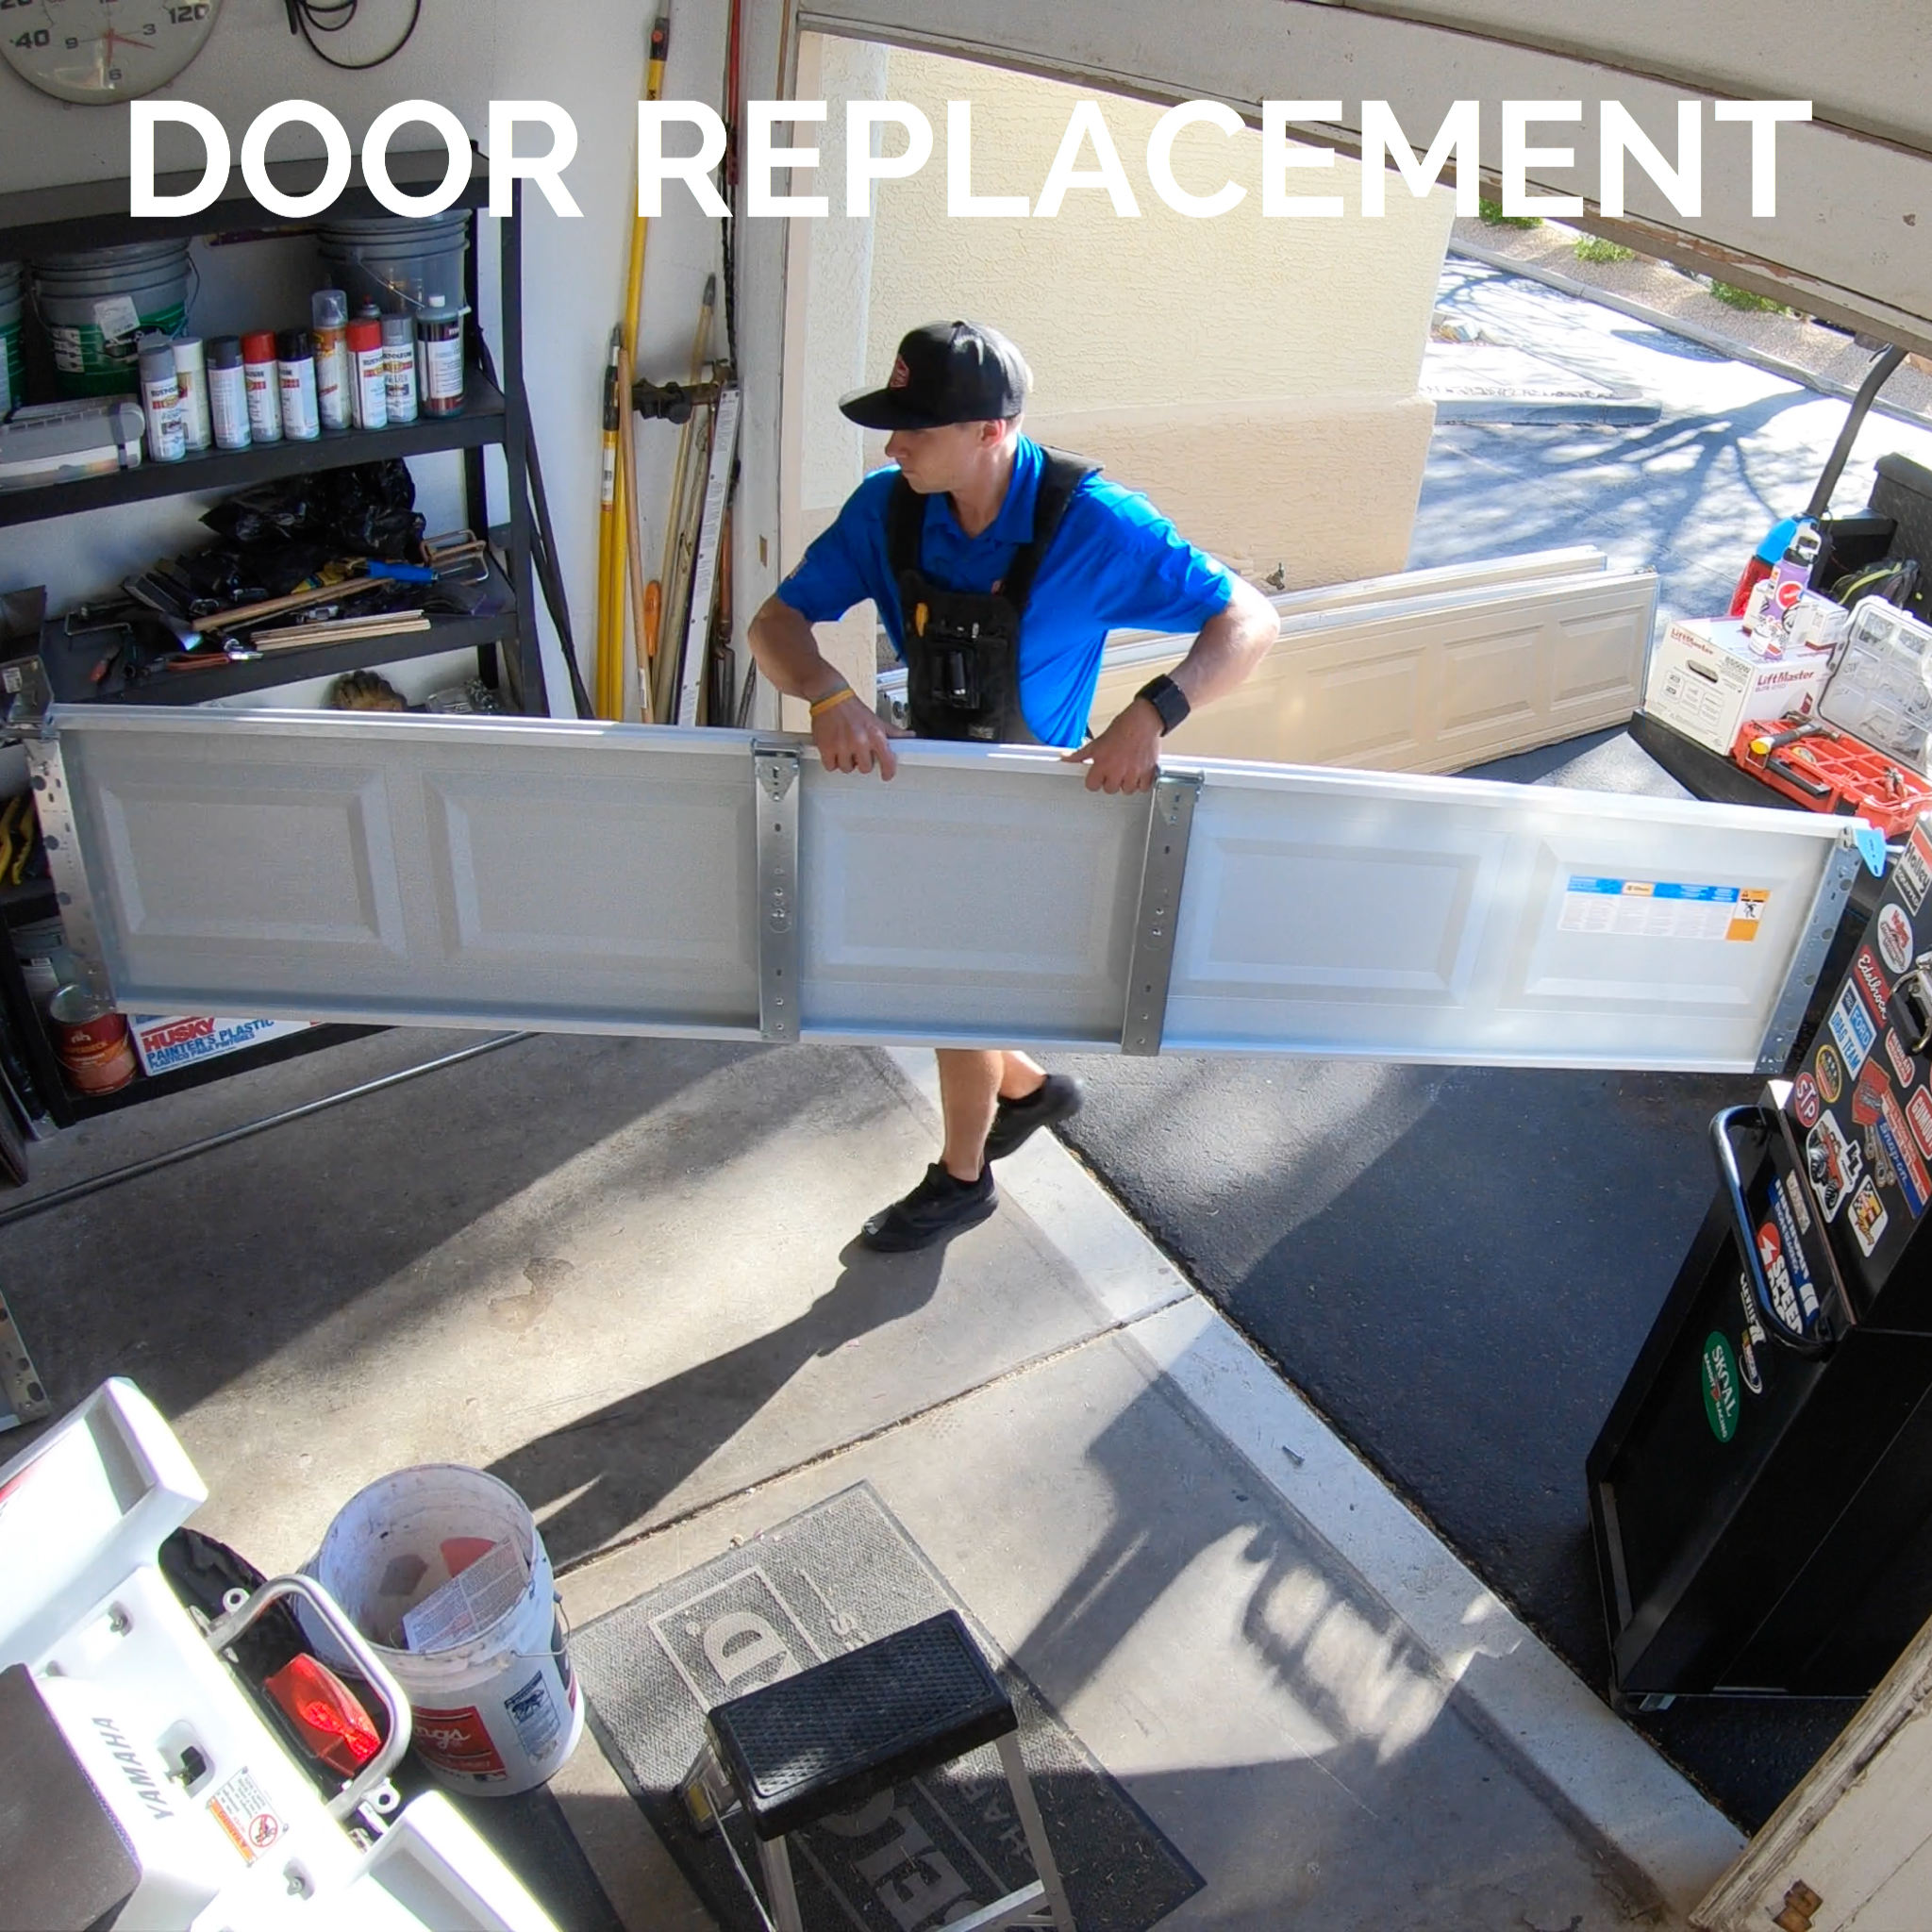 Garage Door Repair Queen Creek Az Garage Door Repair Installation And Replacement Service In Arizona